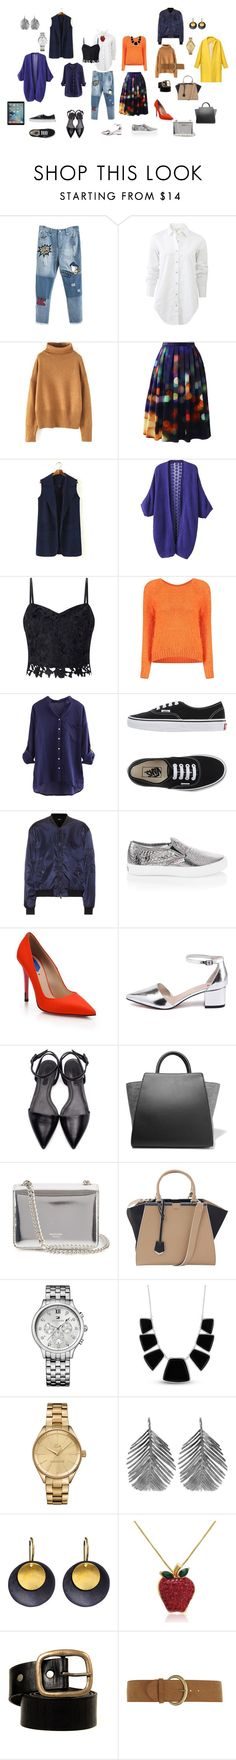 """Капсула для работы стилистом"" by knv9077 on Polyvore featuring мода, rag & bone, Chicwish, Lipsy, Vans, Jil Sander Navy, White House Black Market, Fendi, Alexander Wang и ZAC Zac Posen"